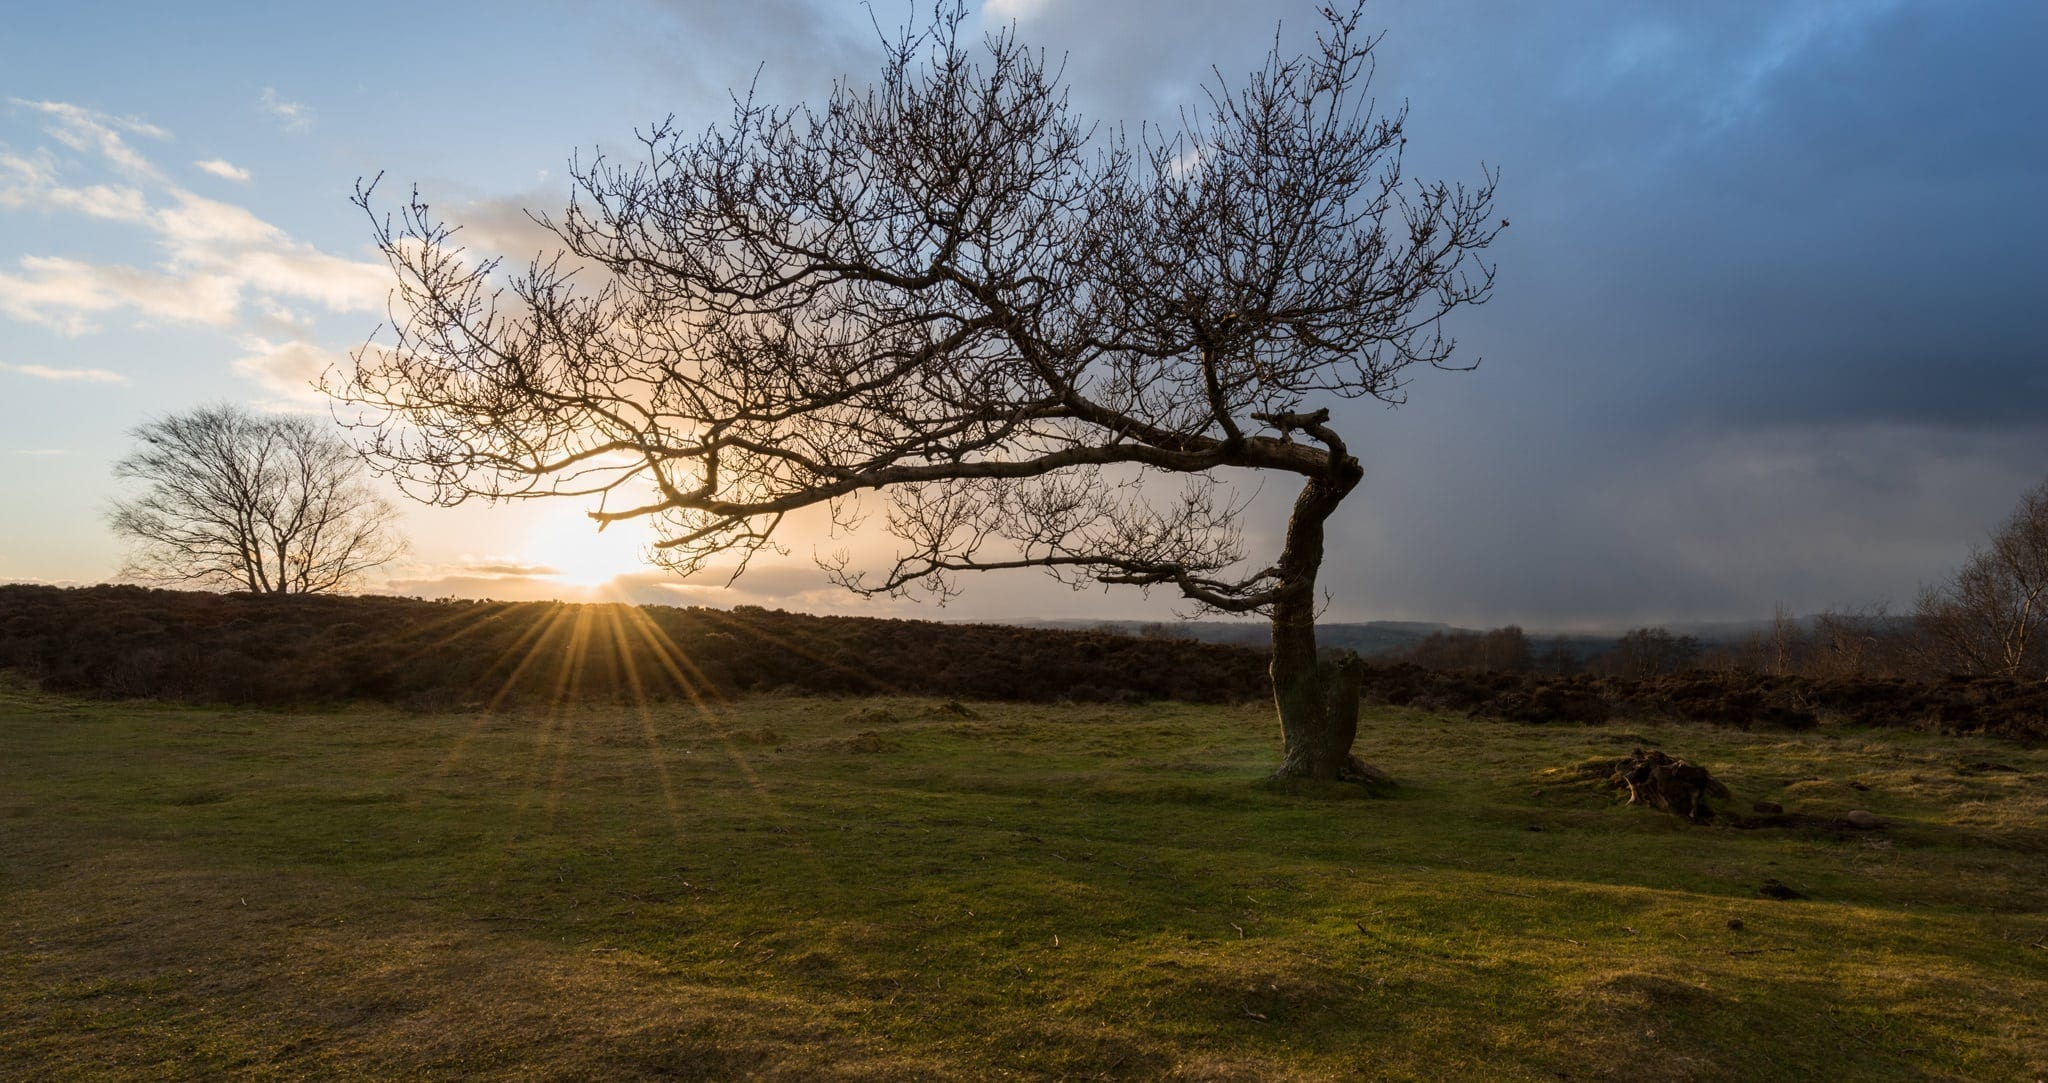 Stanton Moor Leaning Tree - Photographing the Peak District in Winter Photography Workshop